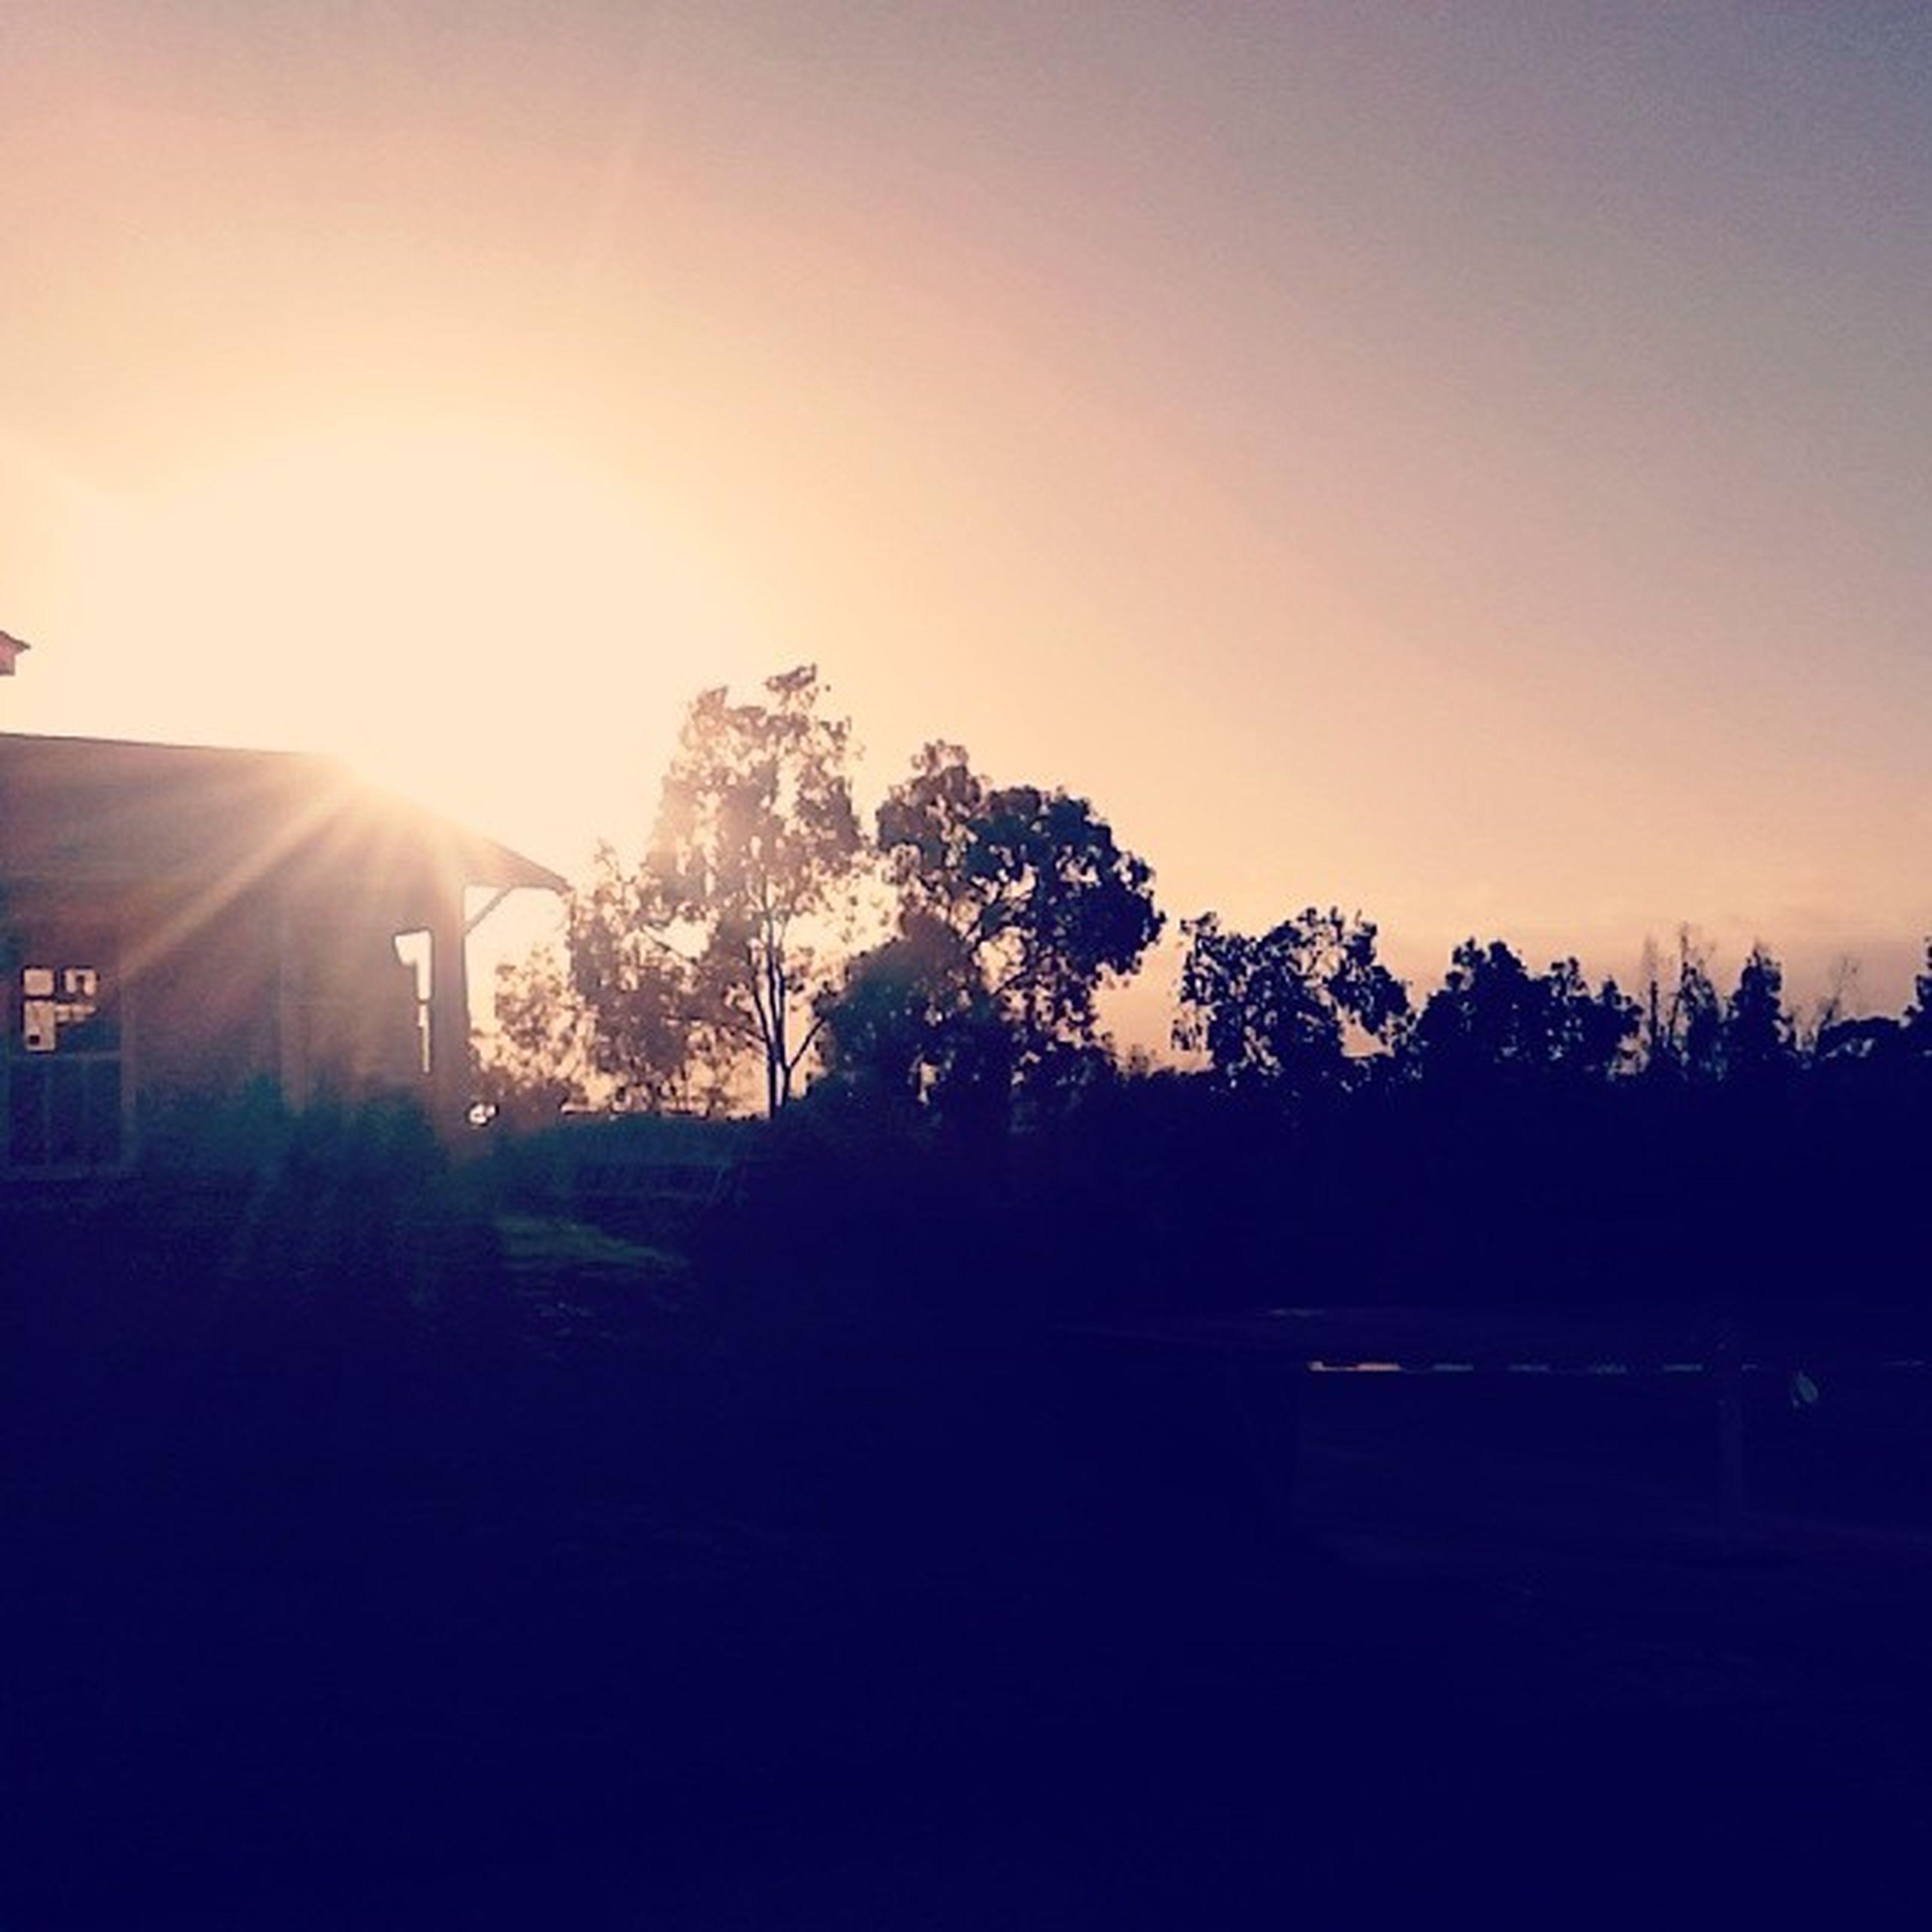 sun, sunset, tree, sunbeam, silhouette, clear sky, sunlight, lens flare, copy space, tranquility, tranquil scene, nature, beauty in nature, sky, bright, scenics, growth, outdoors, no people, landscape